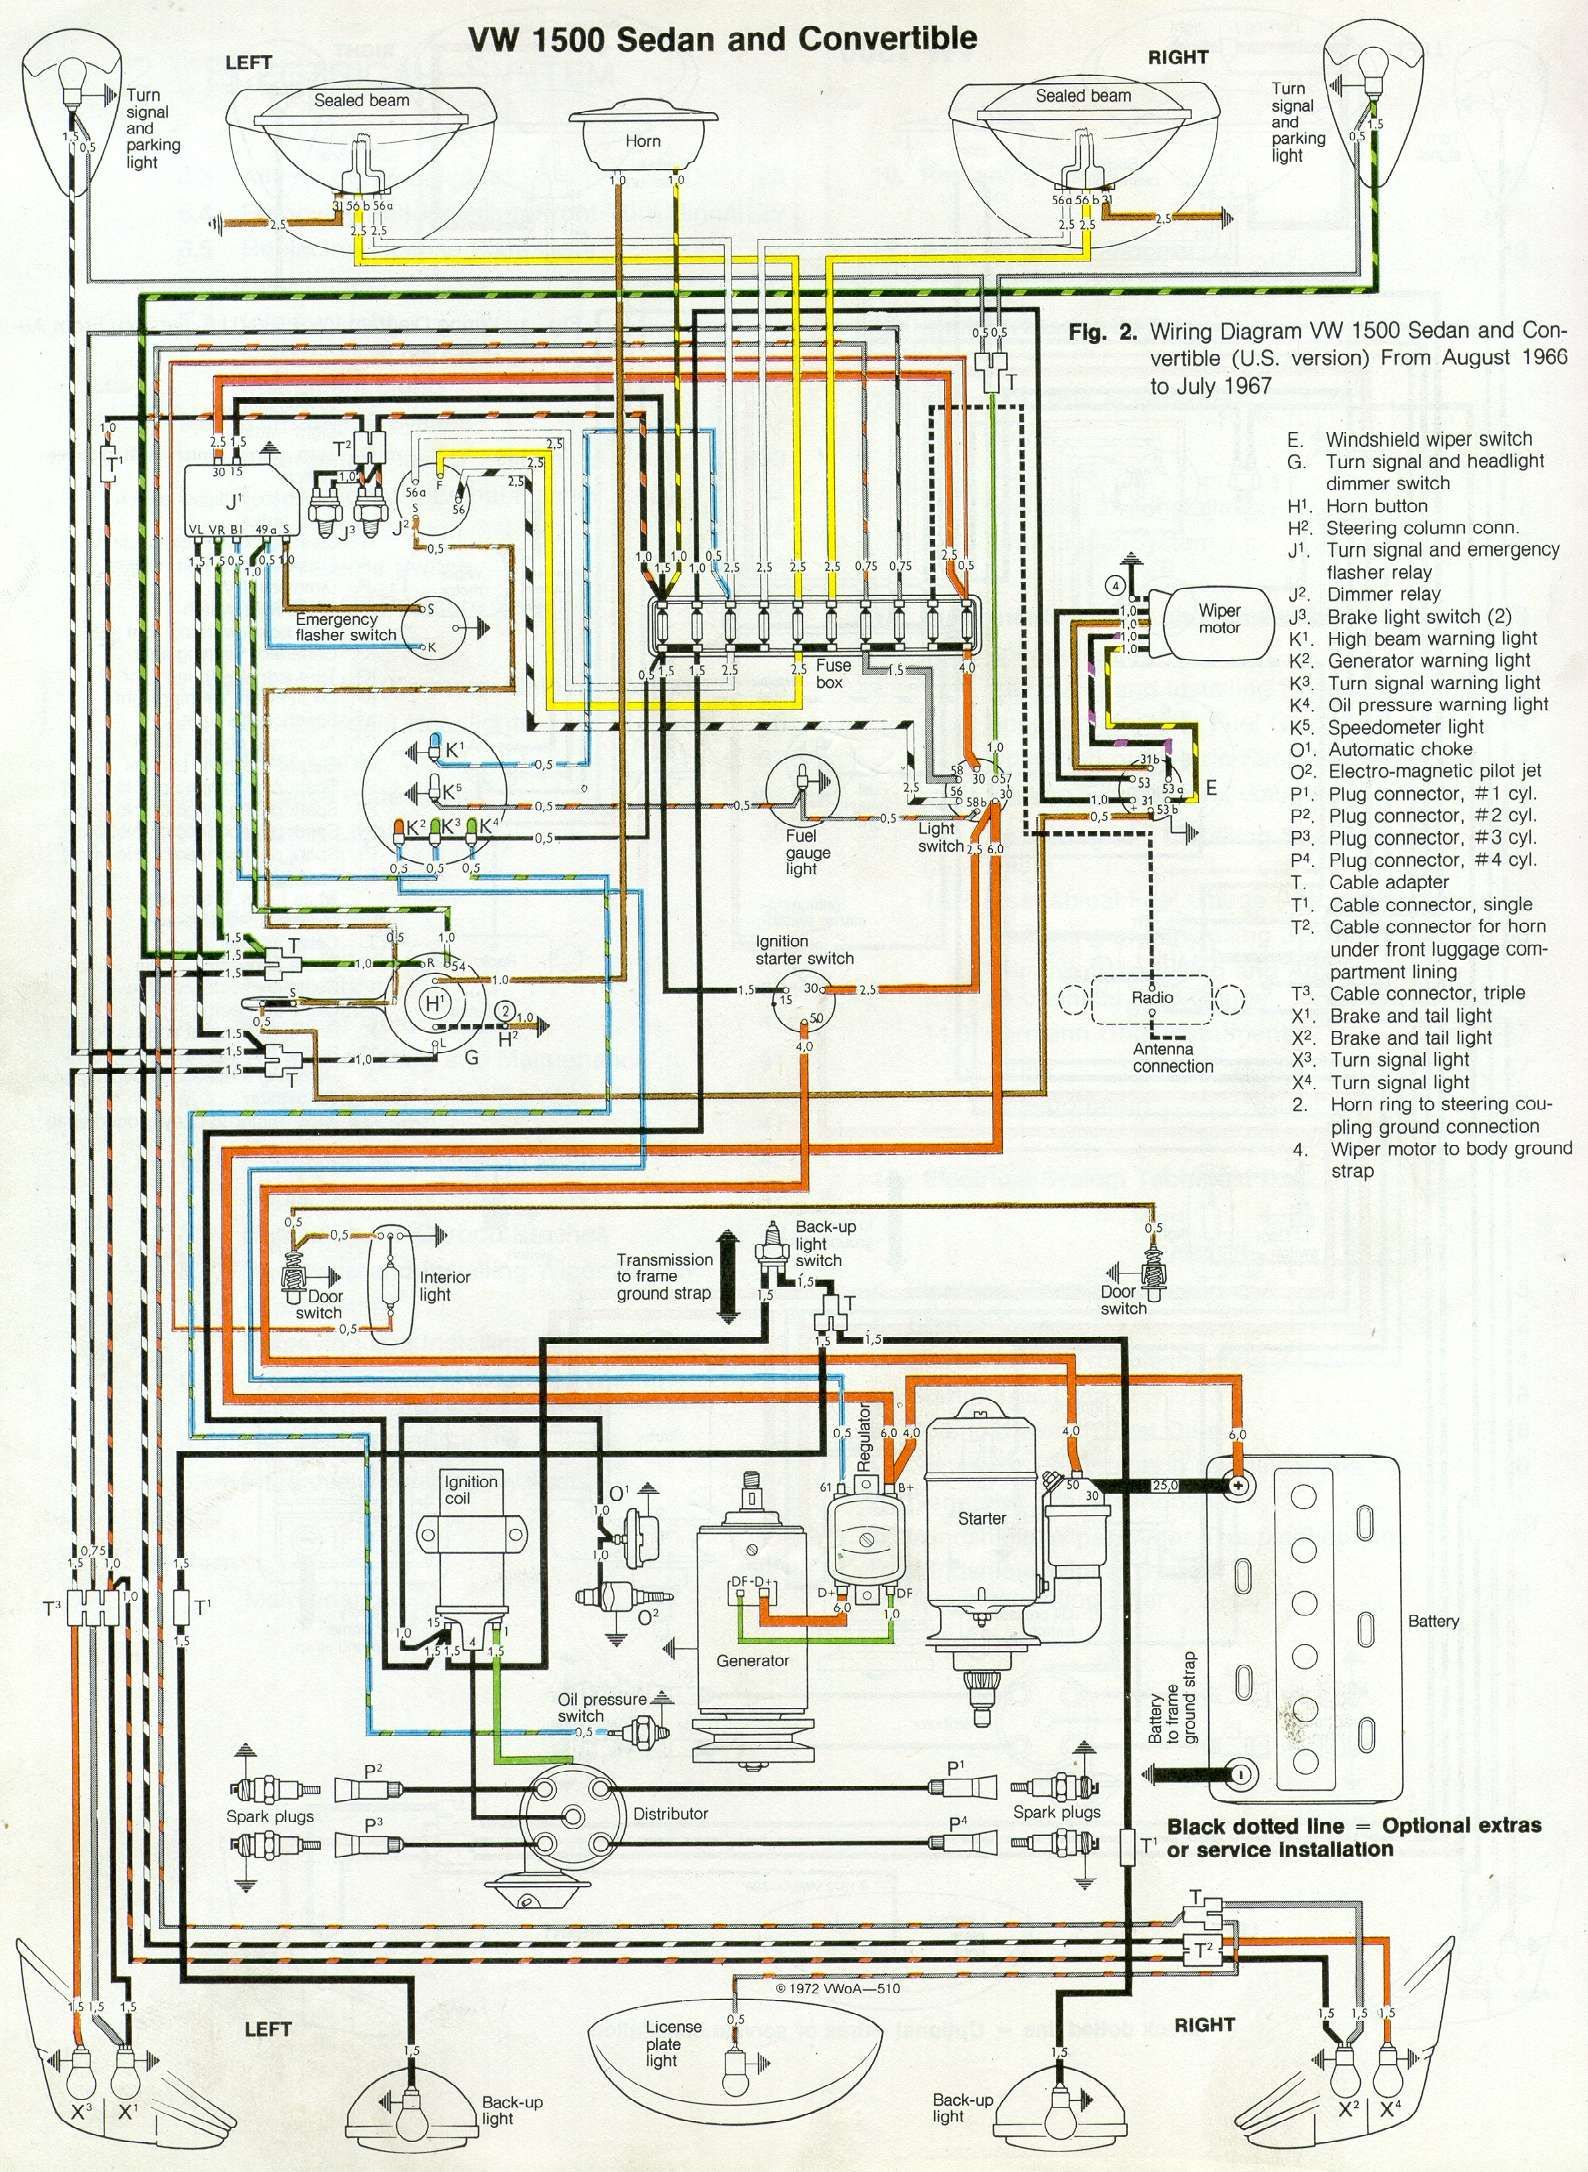 medium resolution of wiring diagrams free bugs 68 downloads vw beetle automotive wiring 1968 vw wiring schematic wiring diagram